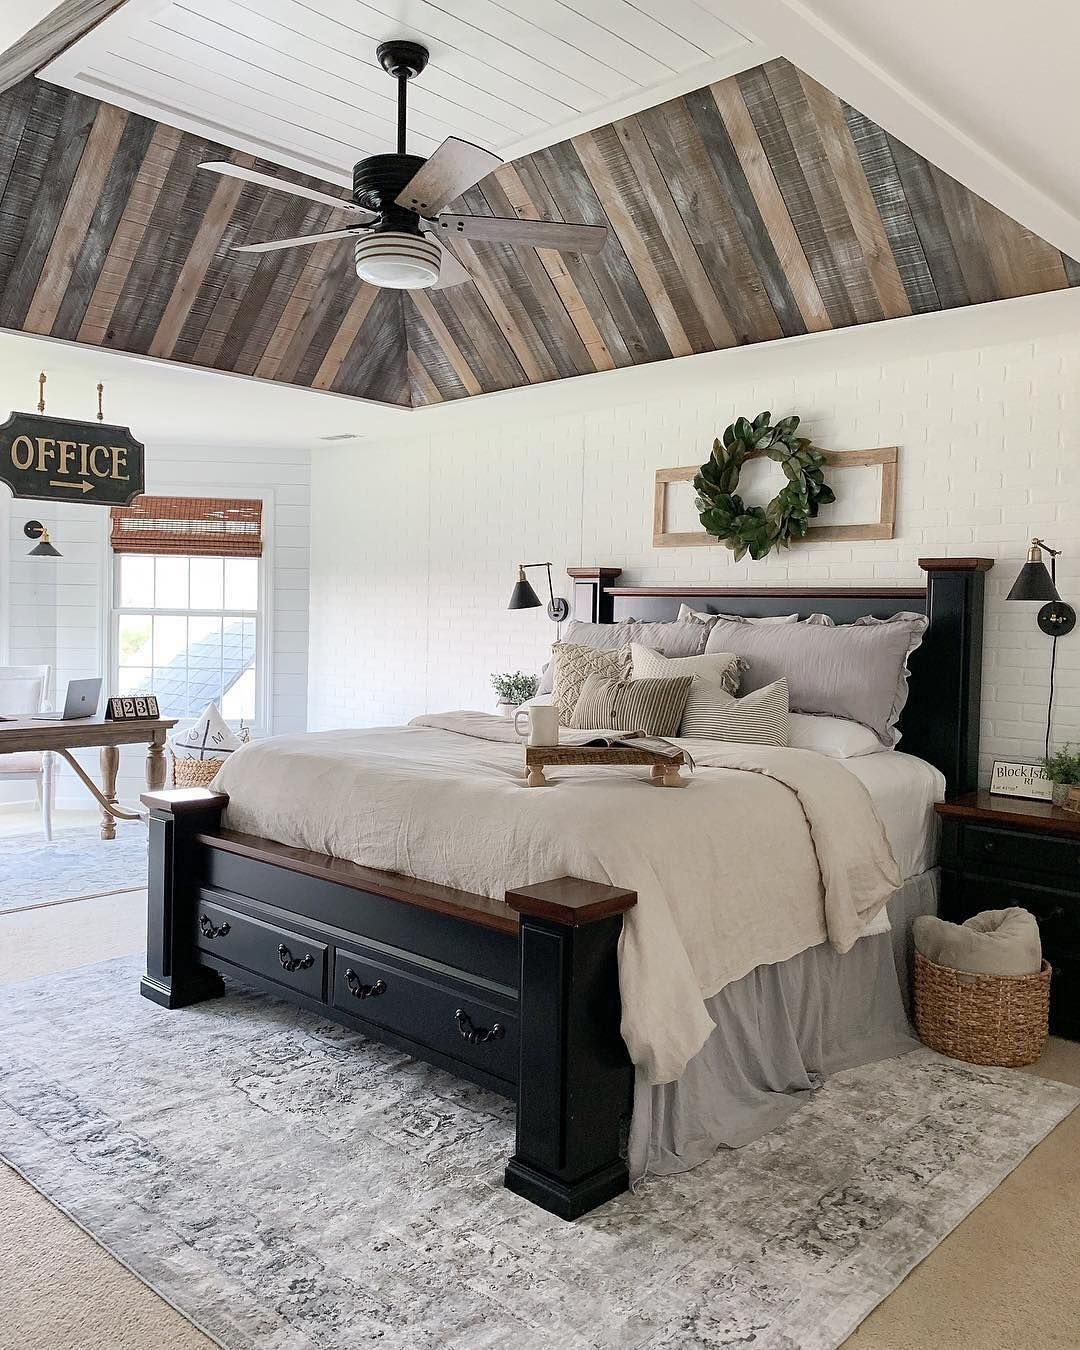 Magnificient Farmhouse Bedroom Decor Ideas To Try Now21